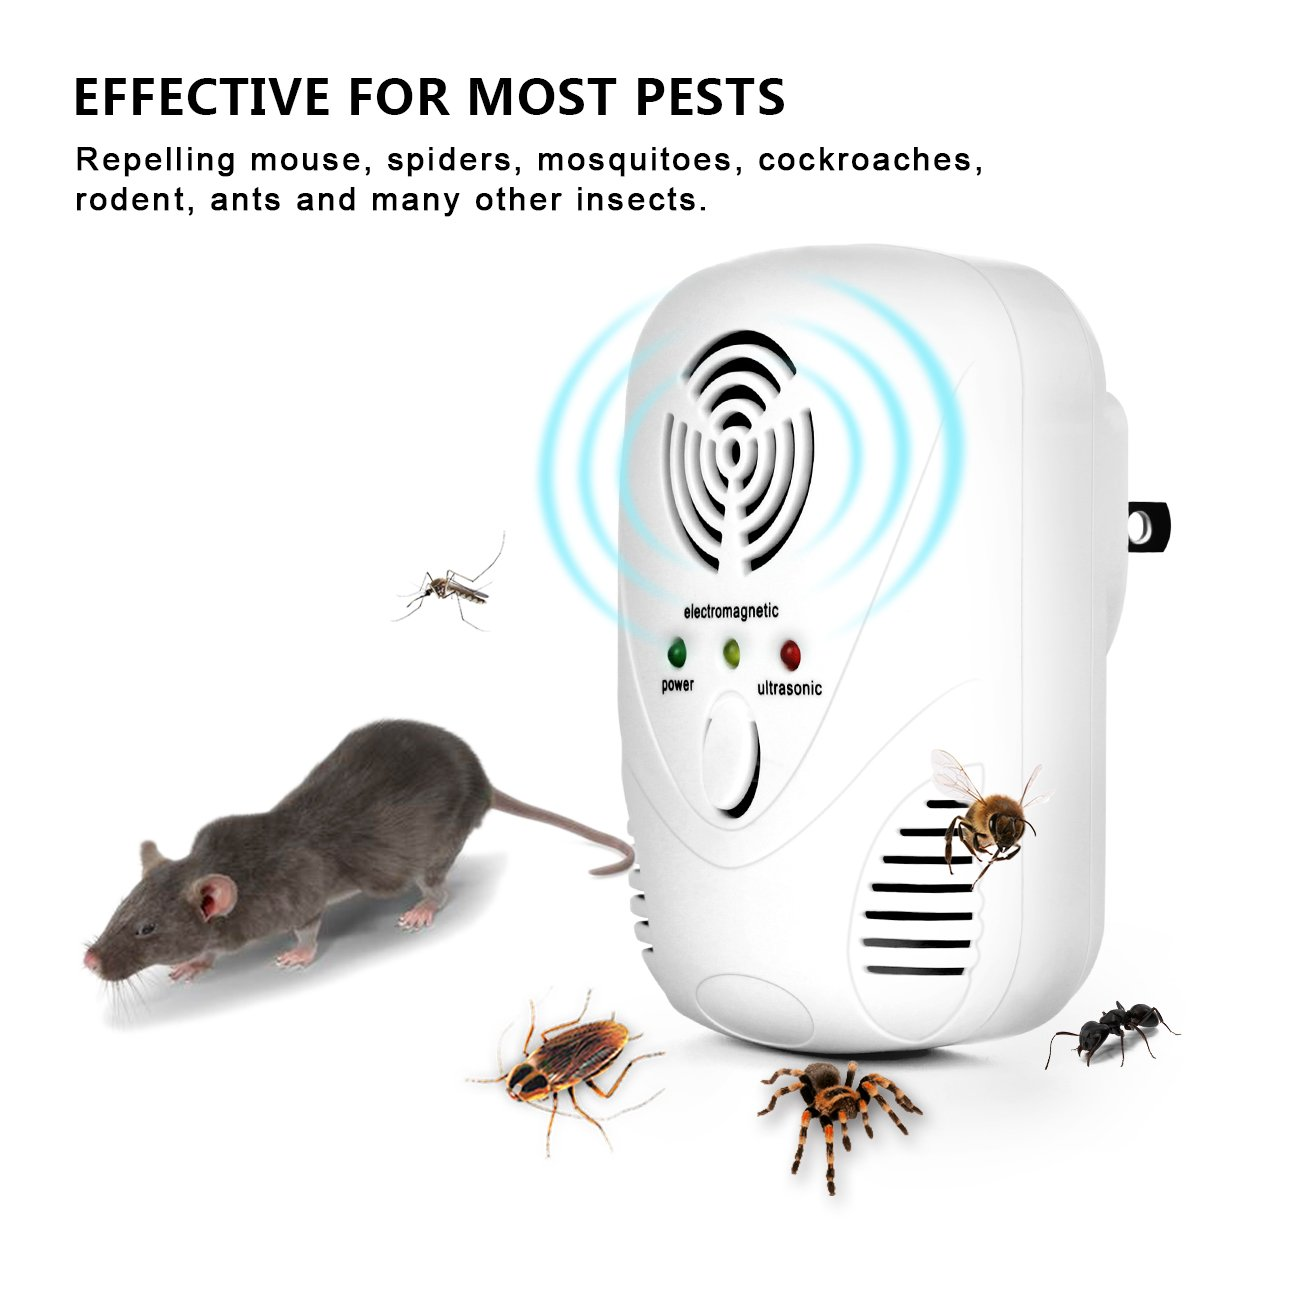 Shine Hai Ultrasonic Pest Repeller 2 150 Sq Ft Mosquito Repellent Circuitbest Repellentindoor Protection Per Unit Electronic Plug In For Mice Mosquitoes Spiders Roaches